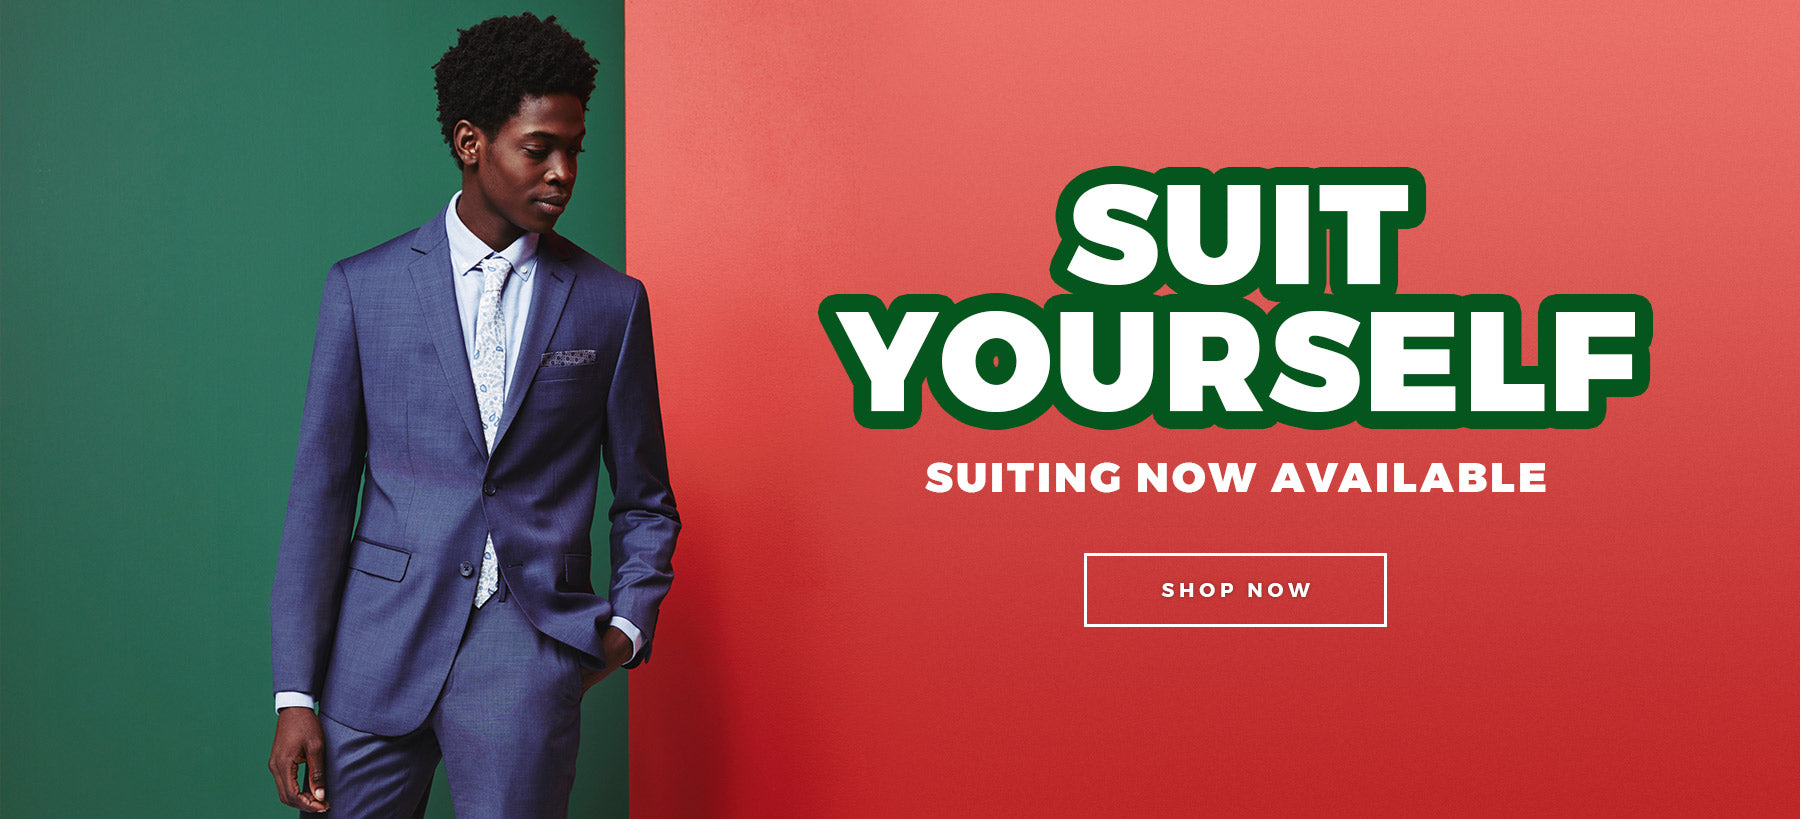 Suit Yourself - Suiting Is In - Shop Now